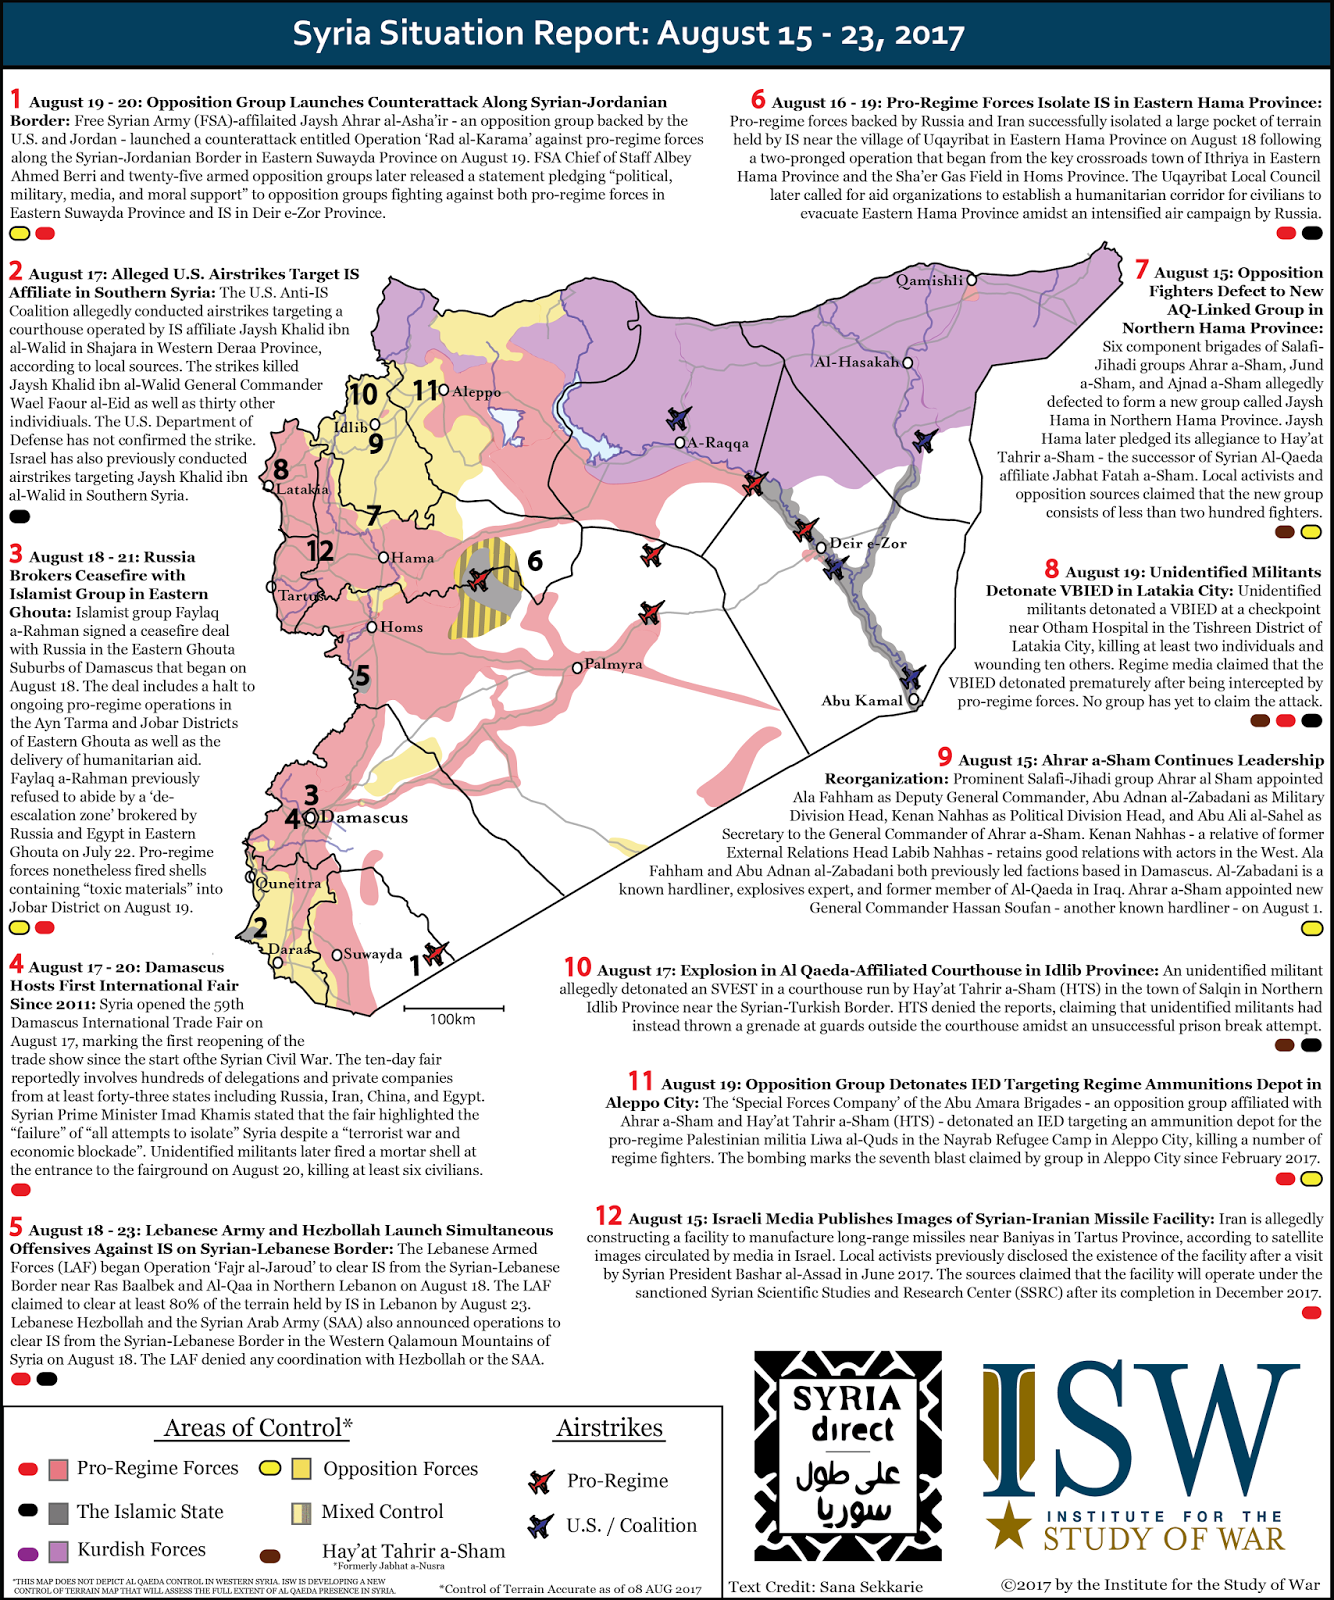 Syria Situation Report: August 8 - 23, 2017